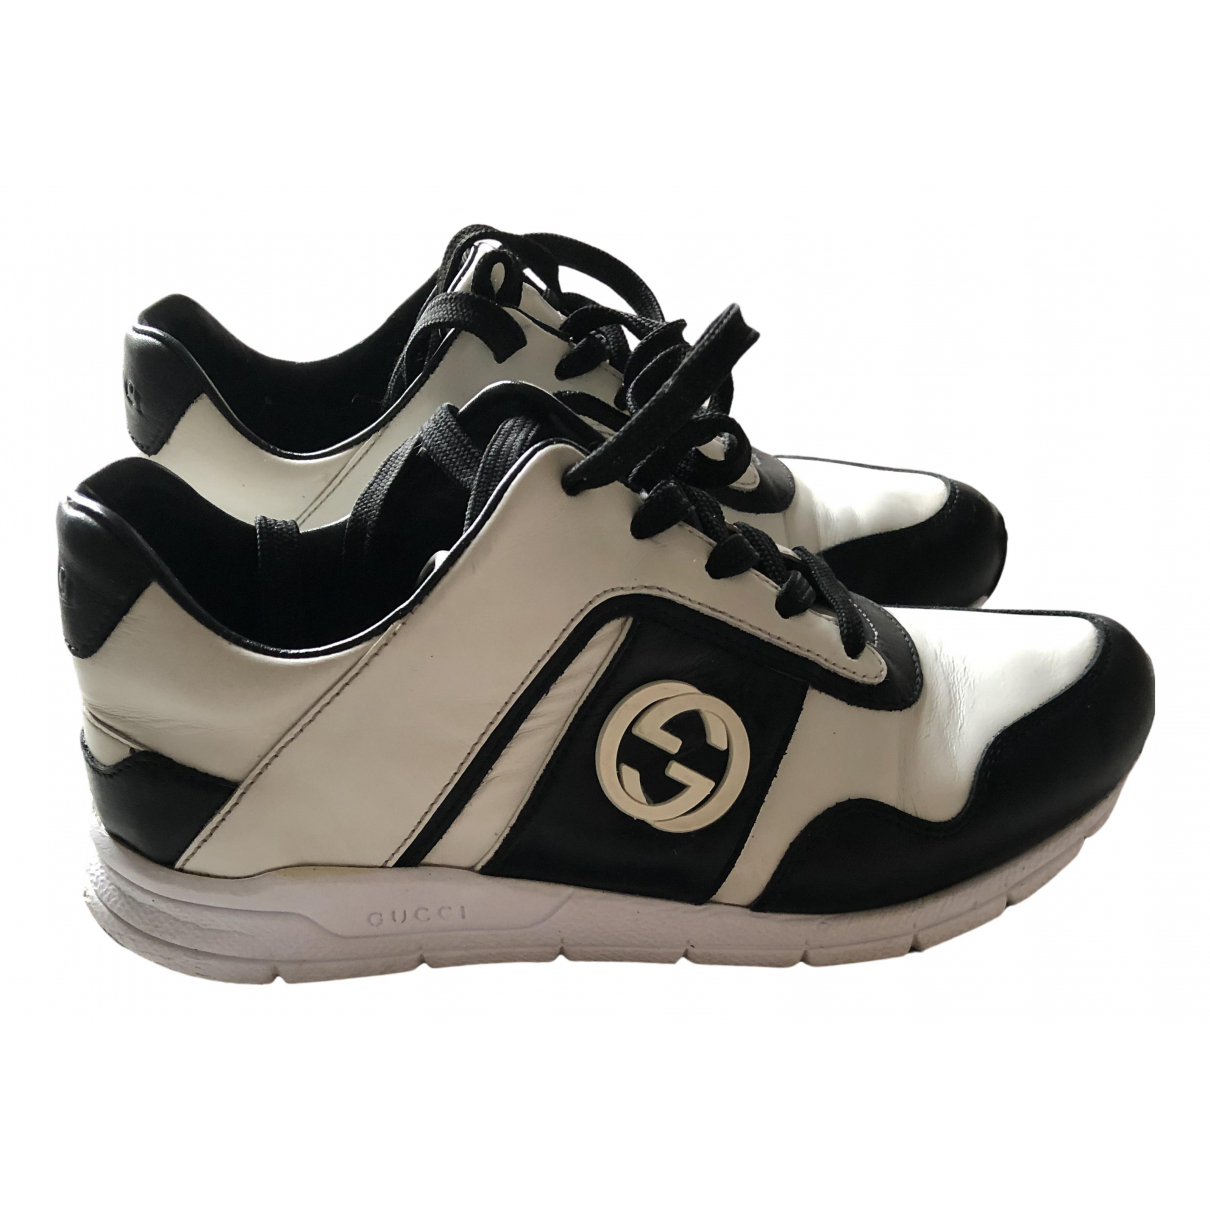 Gucci N White Leather Trainers for Women 35 EU